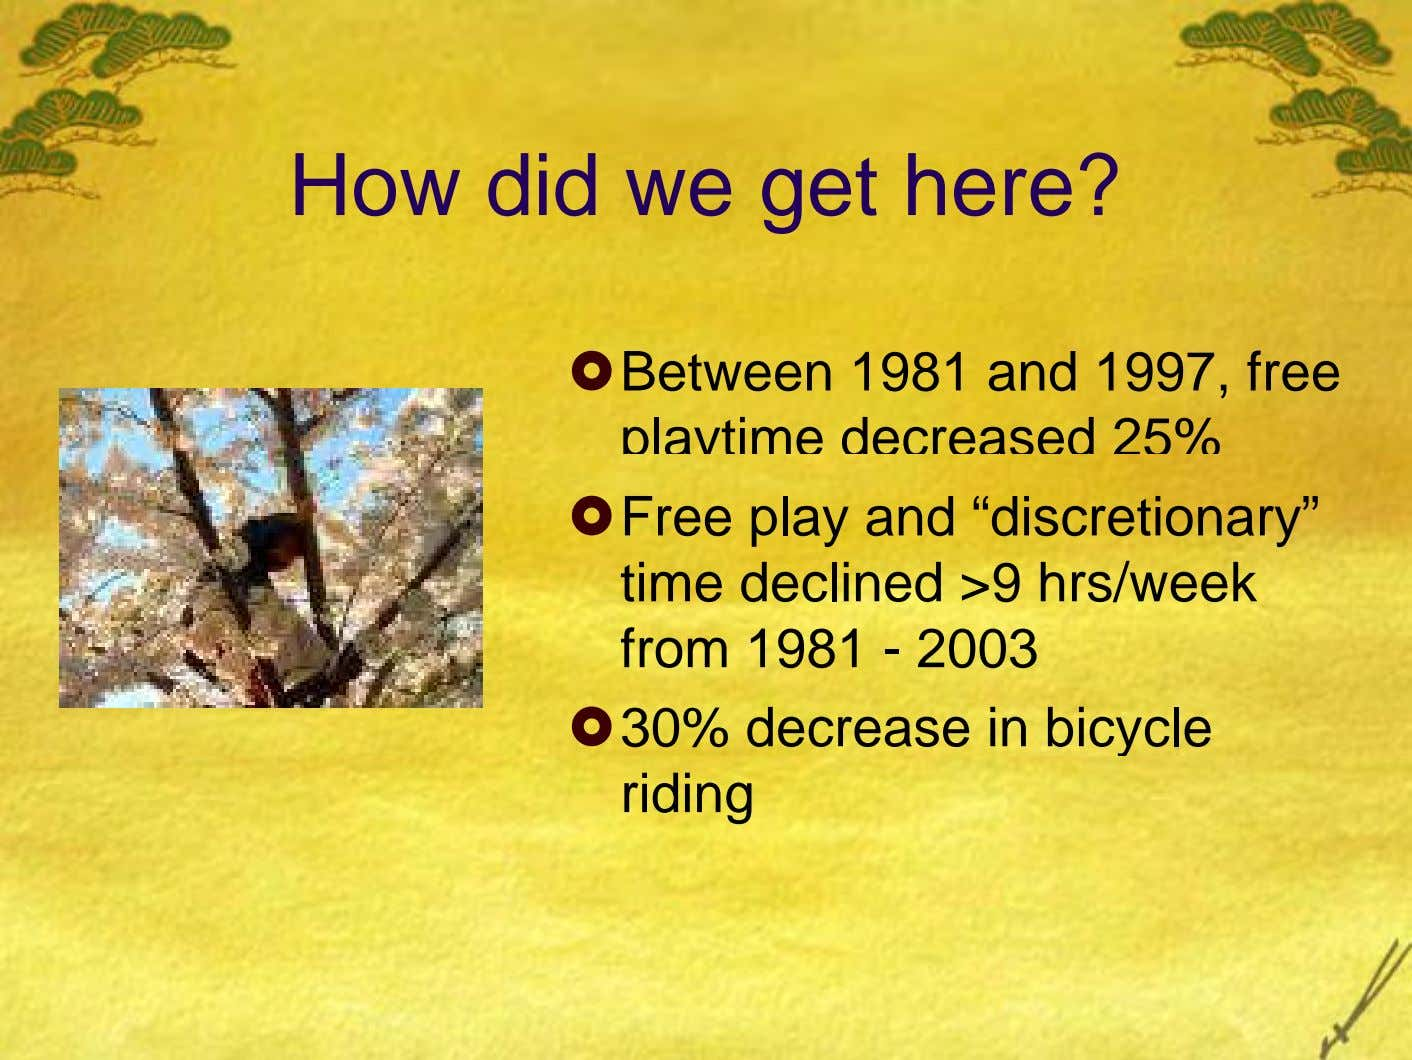 How did we get here? Between 1981 and 1997, free playtime decreased 25% Free play and